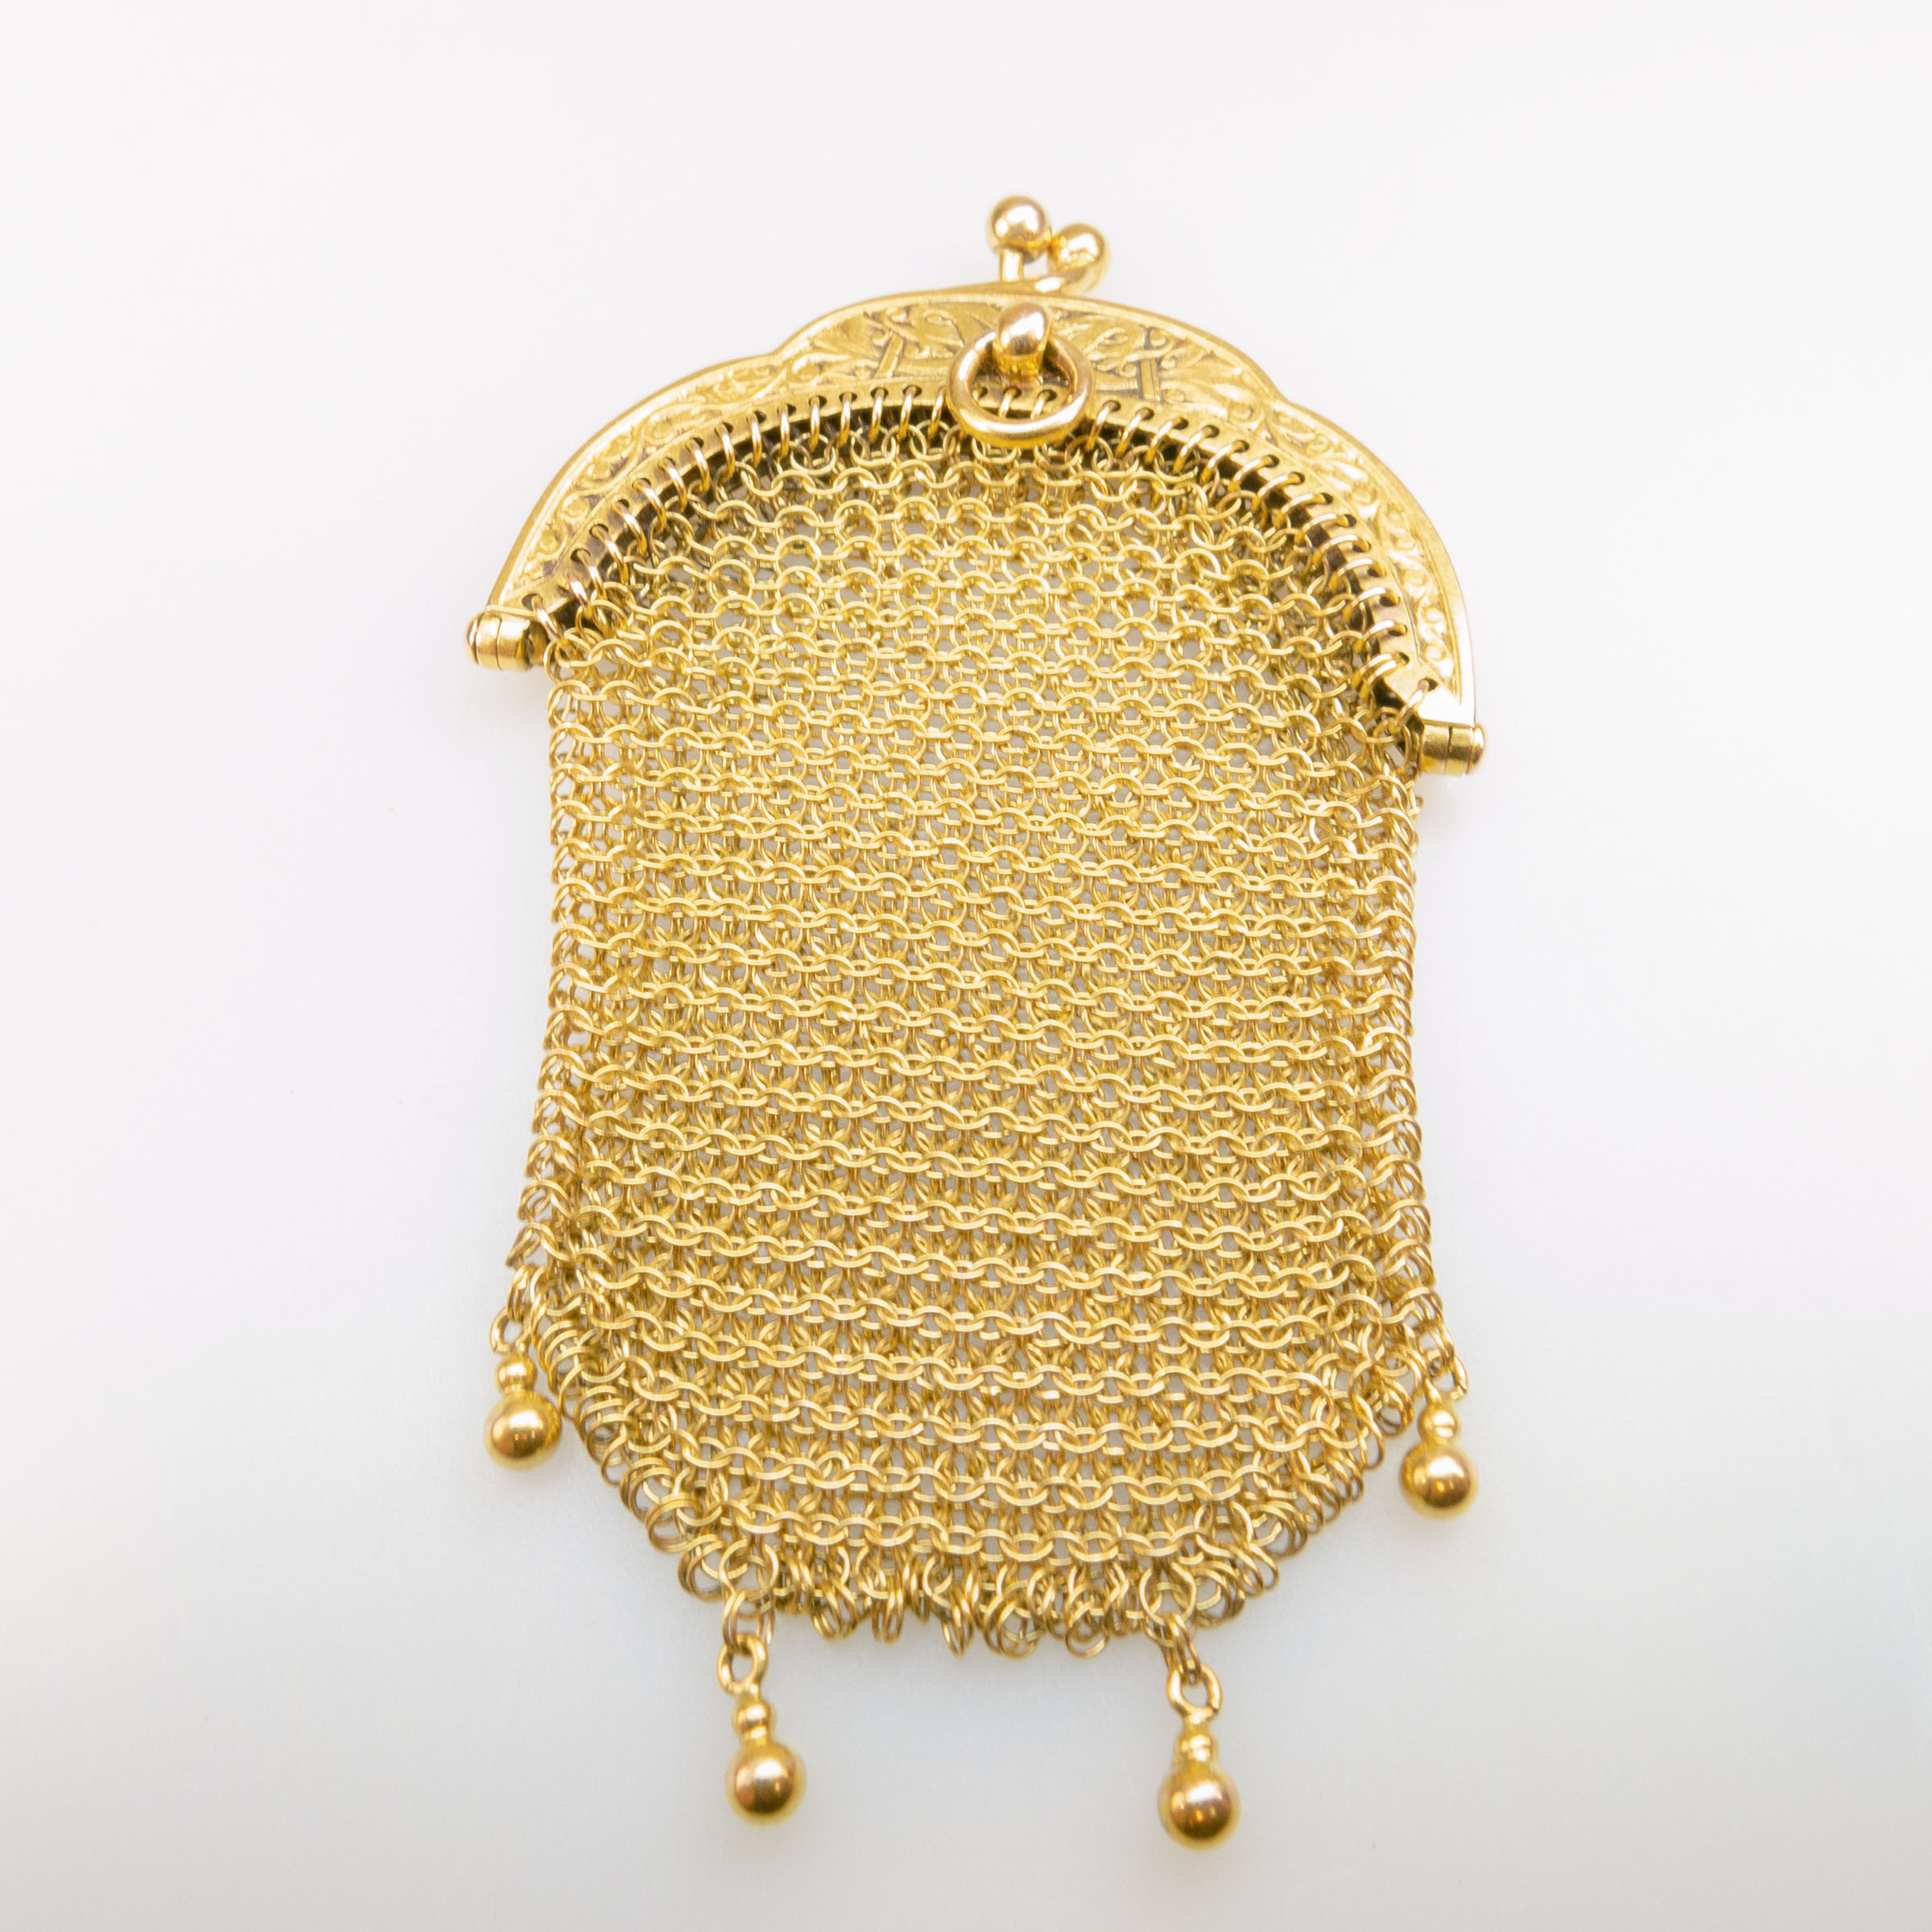 French 18k Yellow Gold Mesh Coin Purse